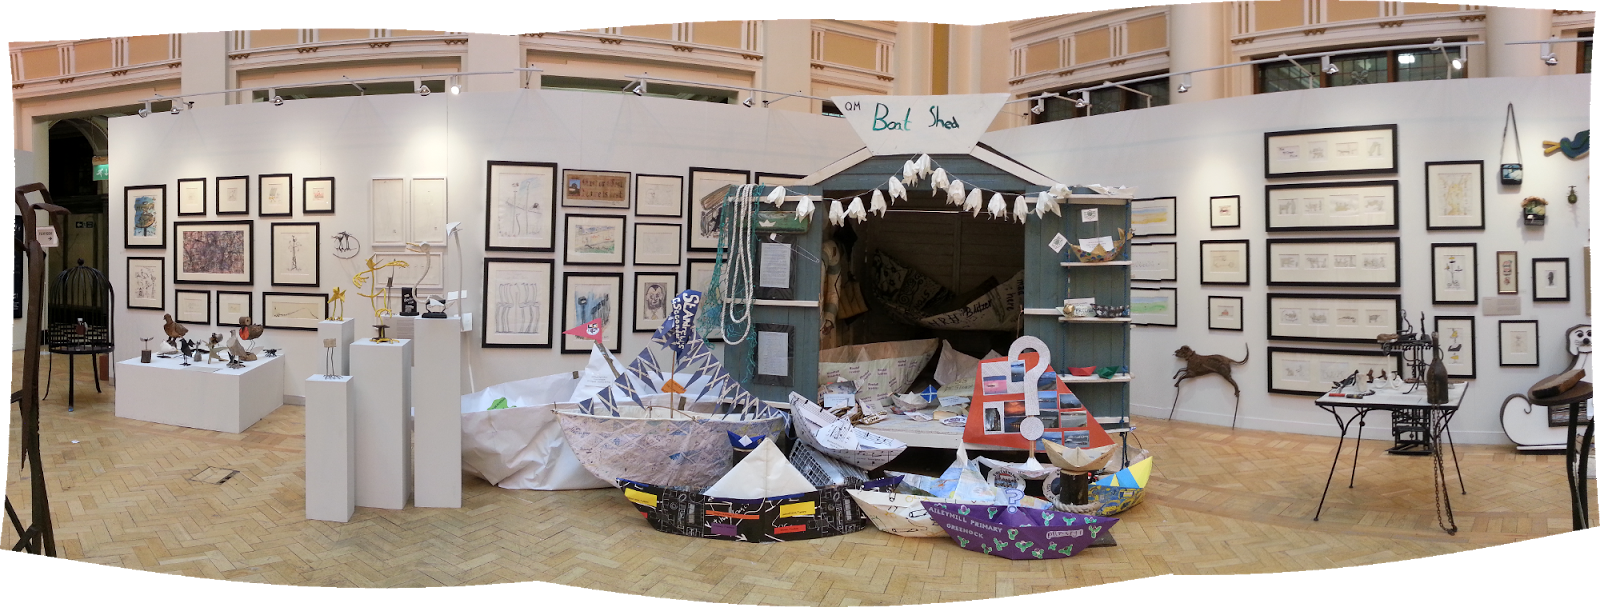 George Wyllie Exhibition, Boat Shed, Mitchell Library, Glasgow